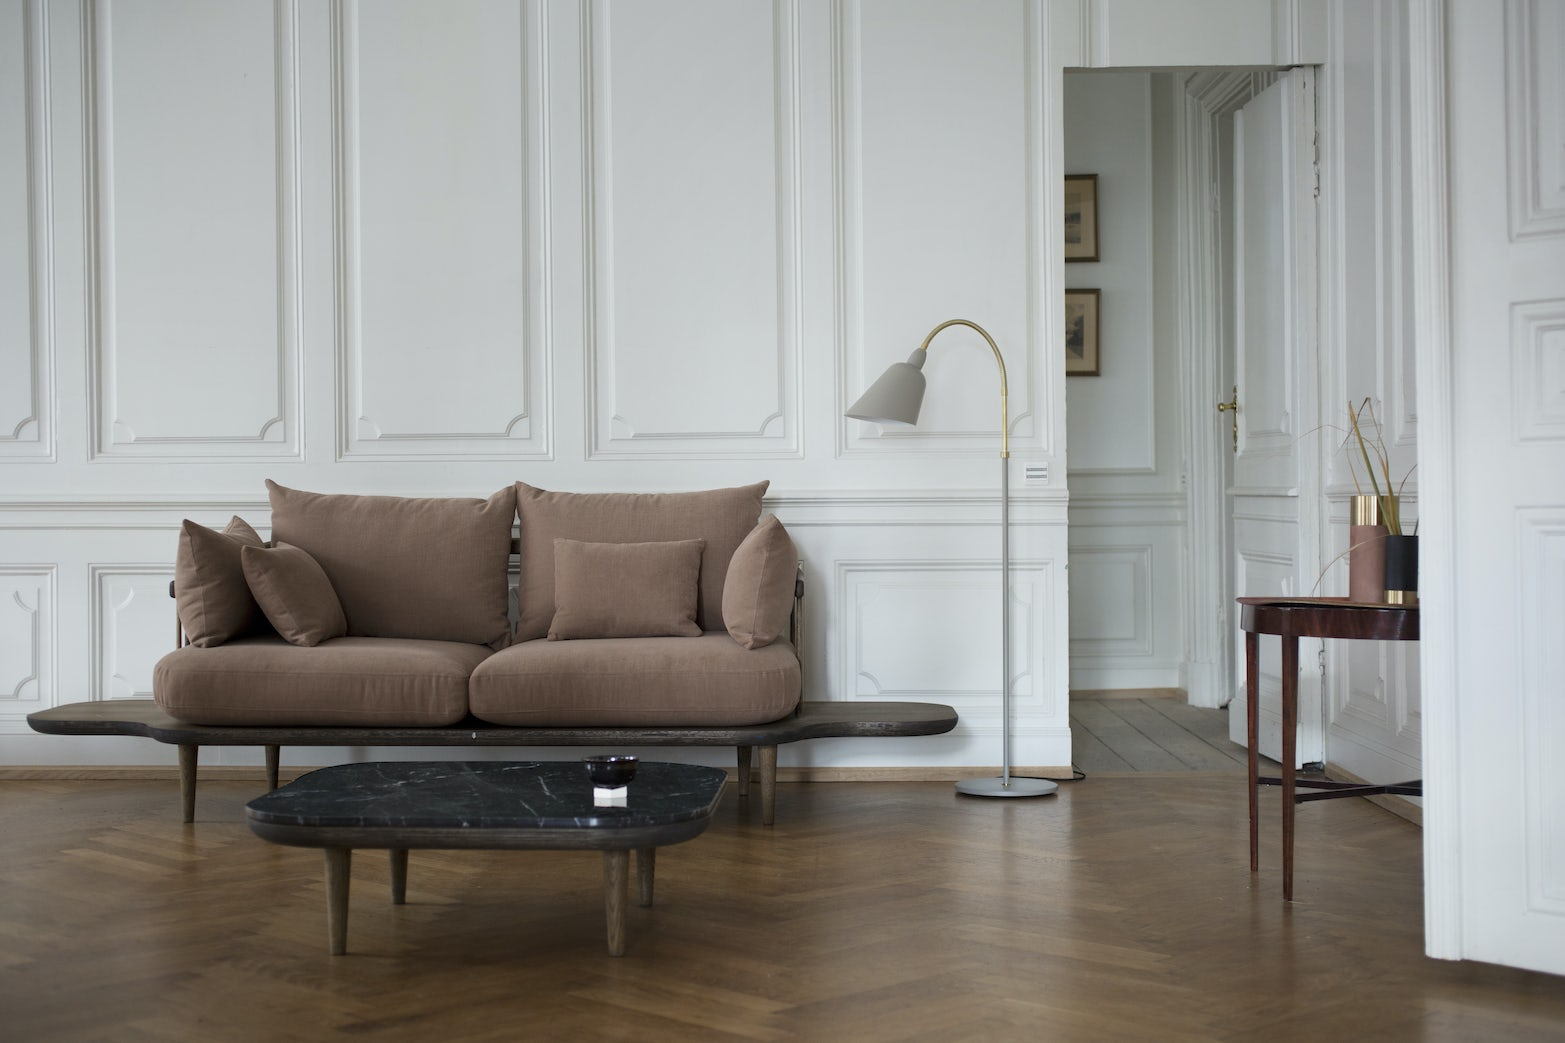 Fly sofa SC3 space copenhagen and tradition 7